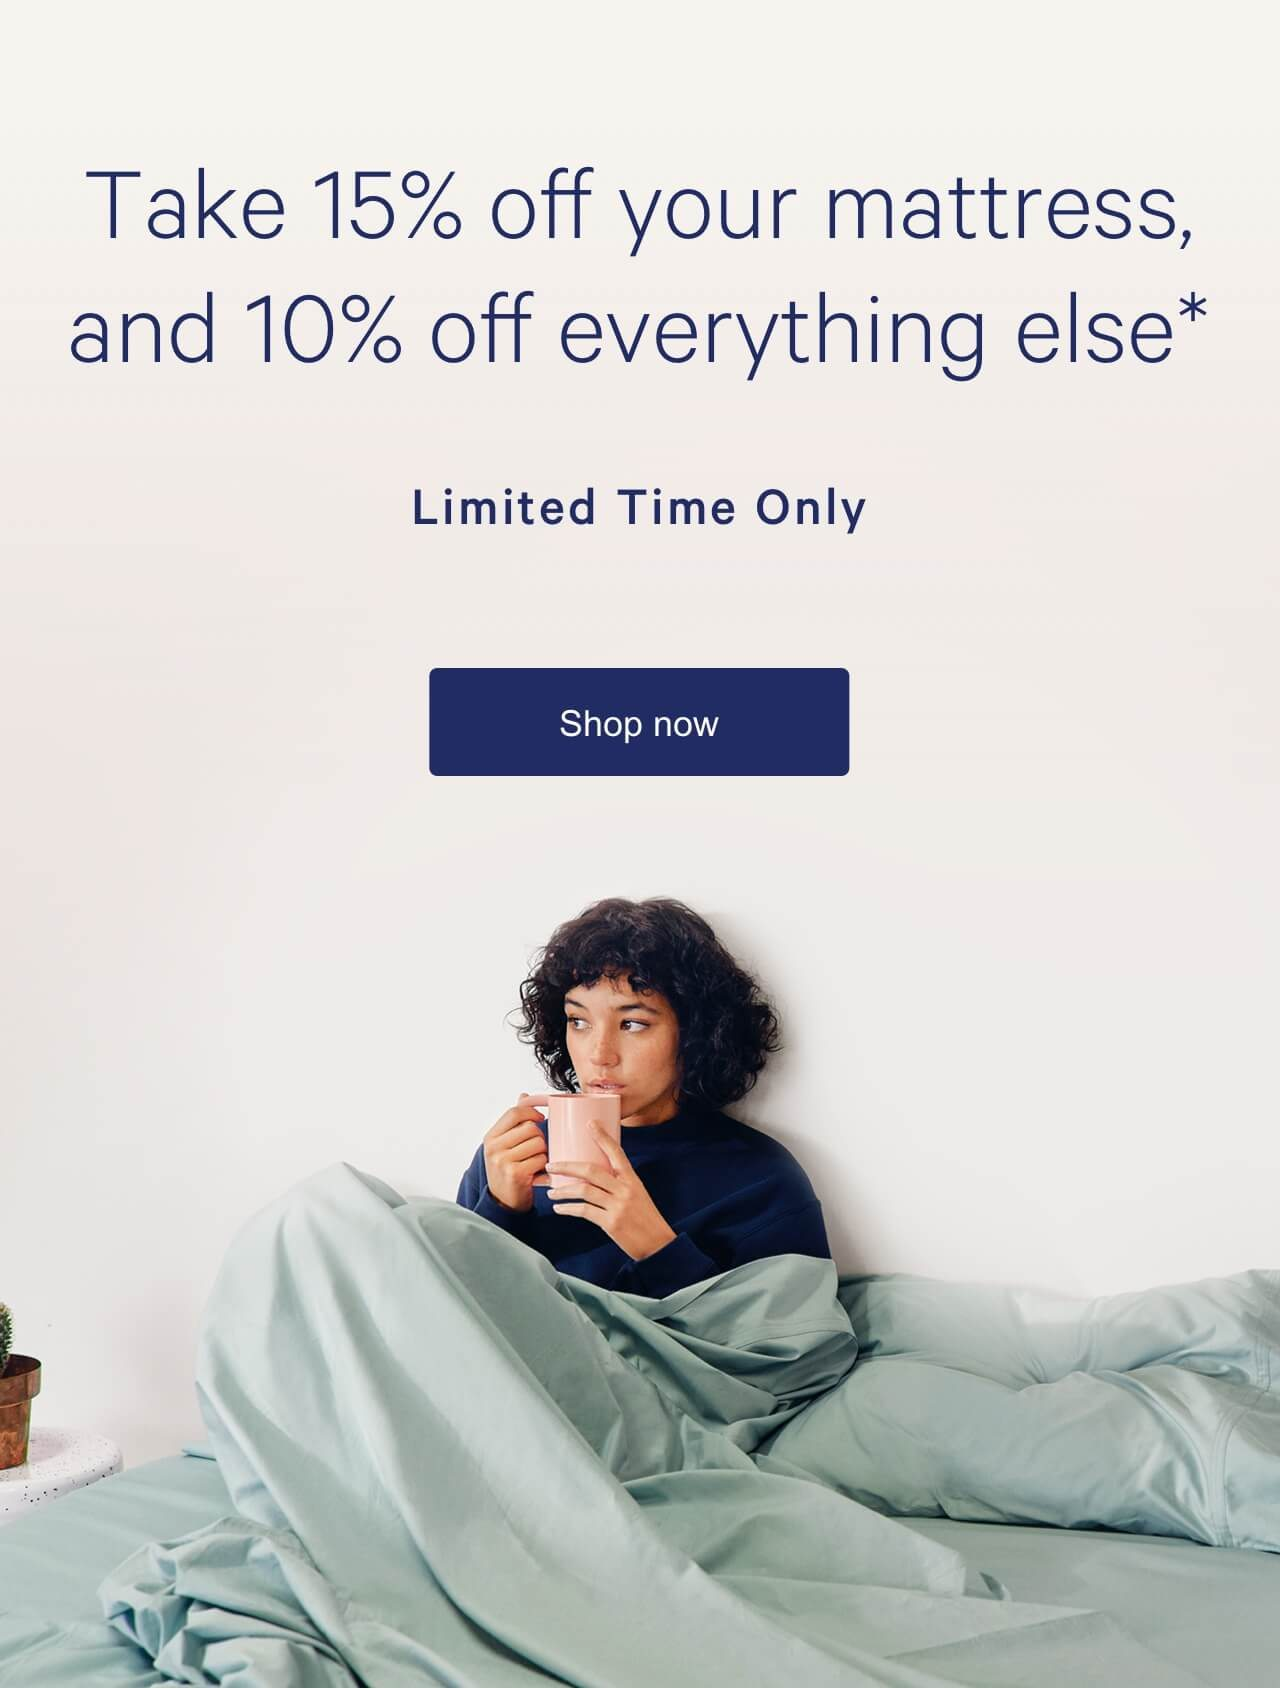 Take 15% off your mattress, and 10% off everythingelse*